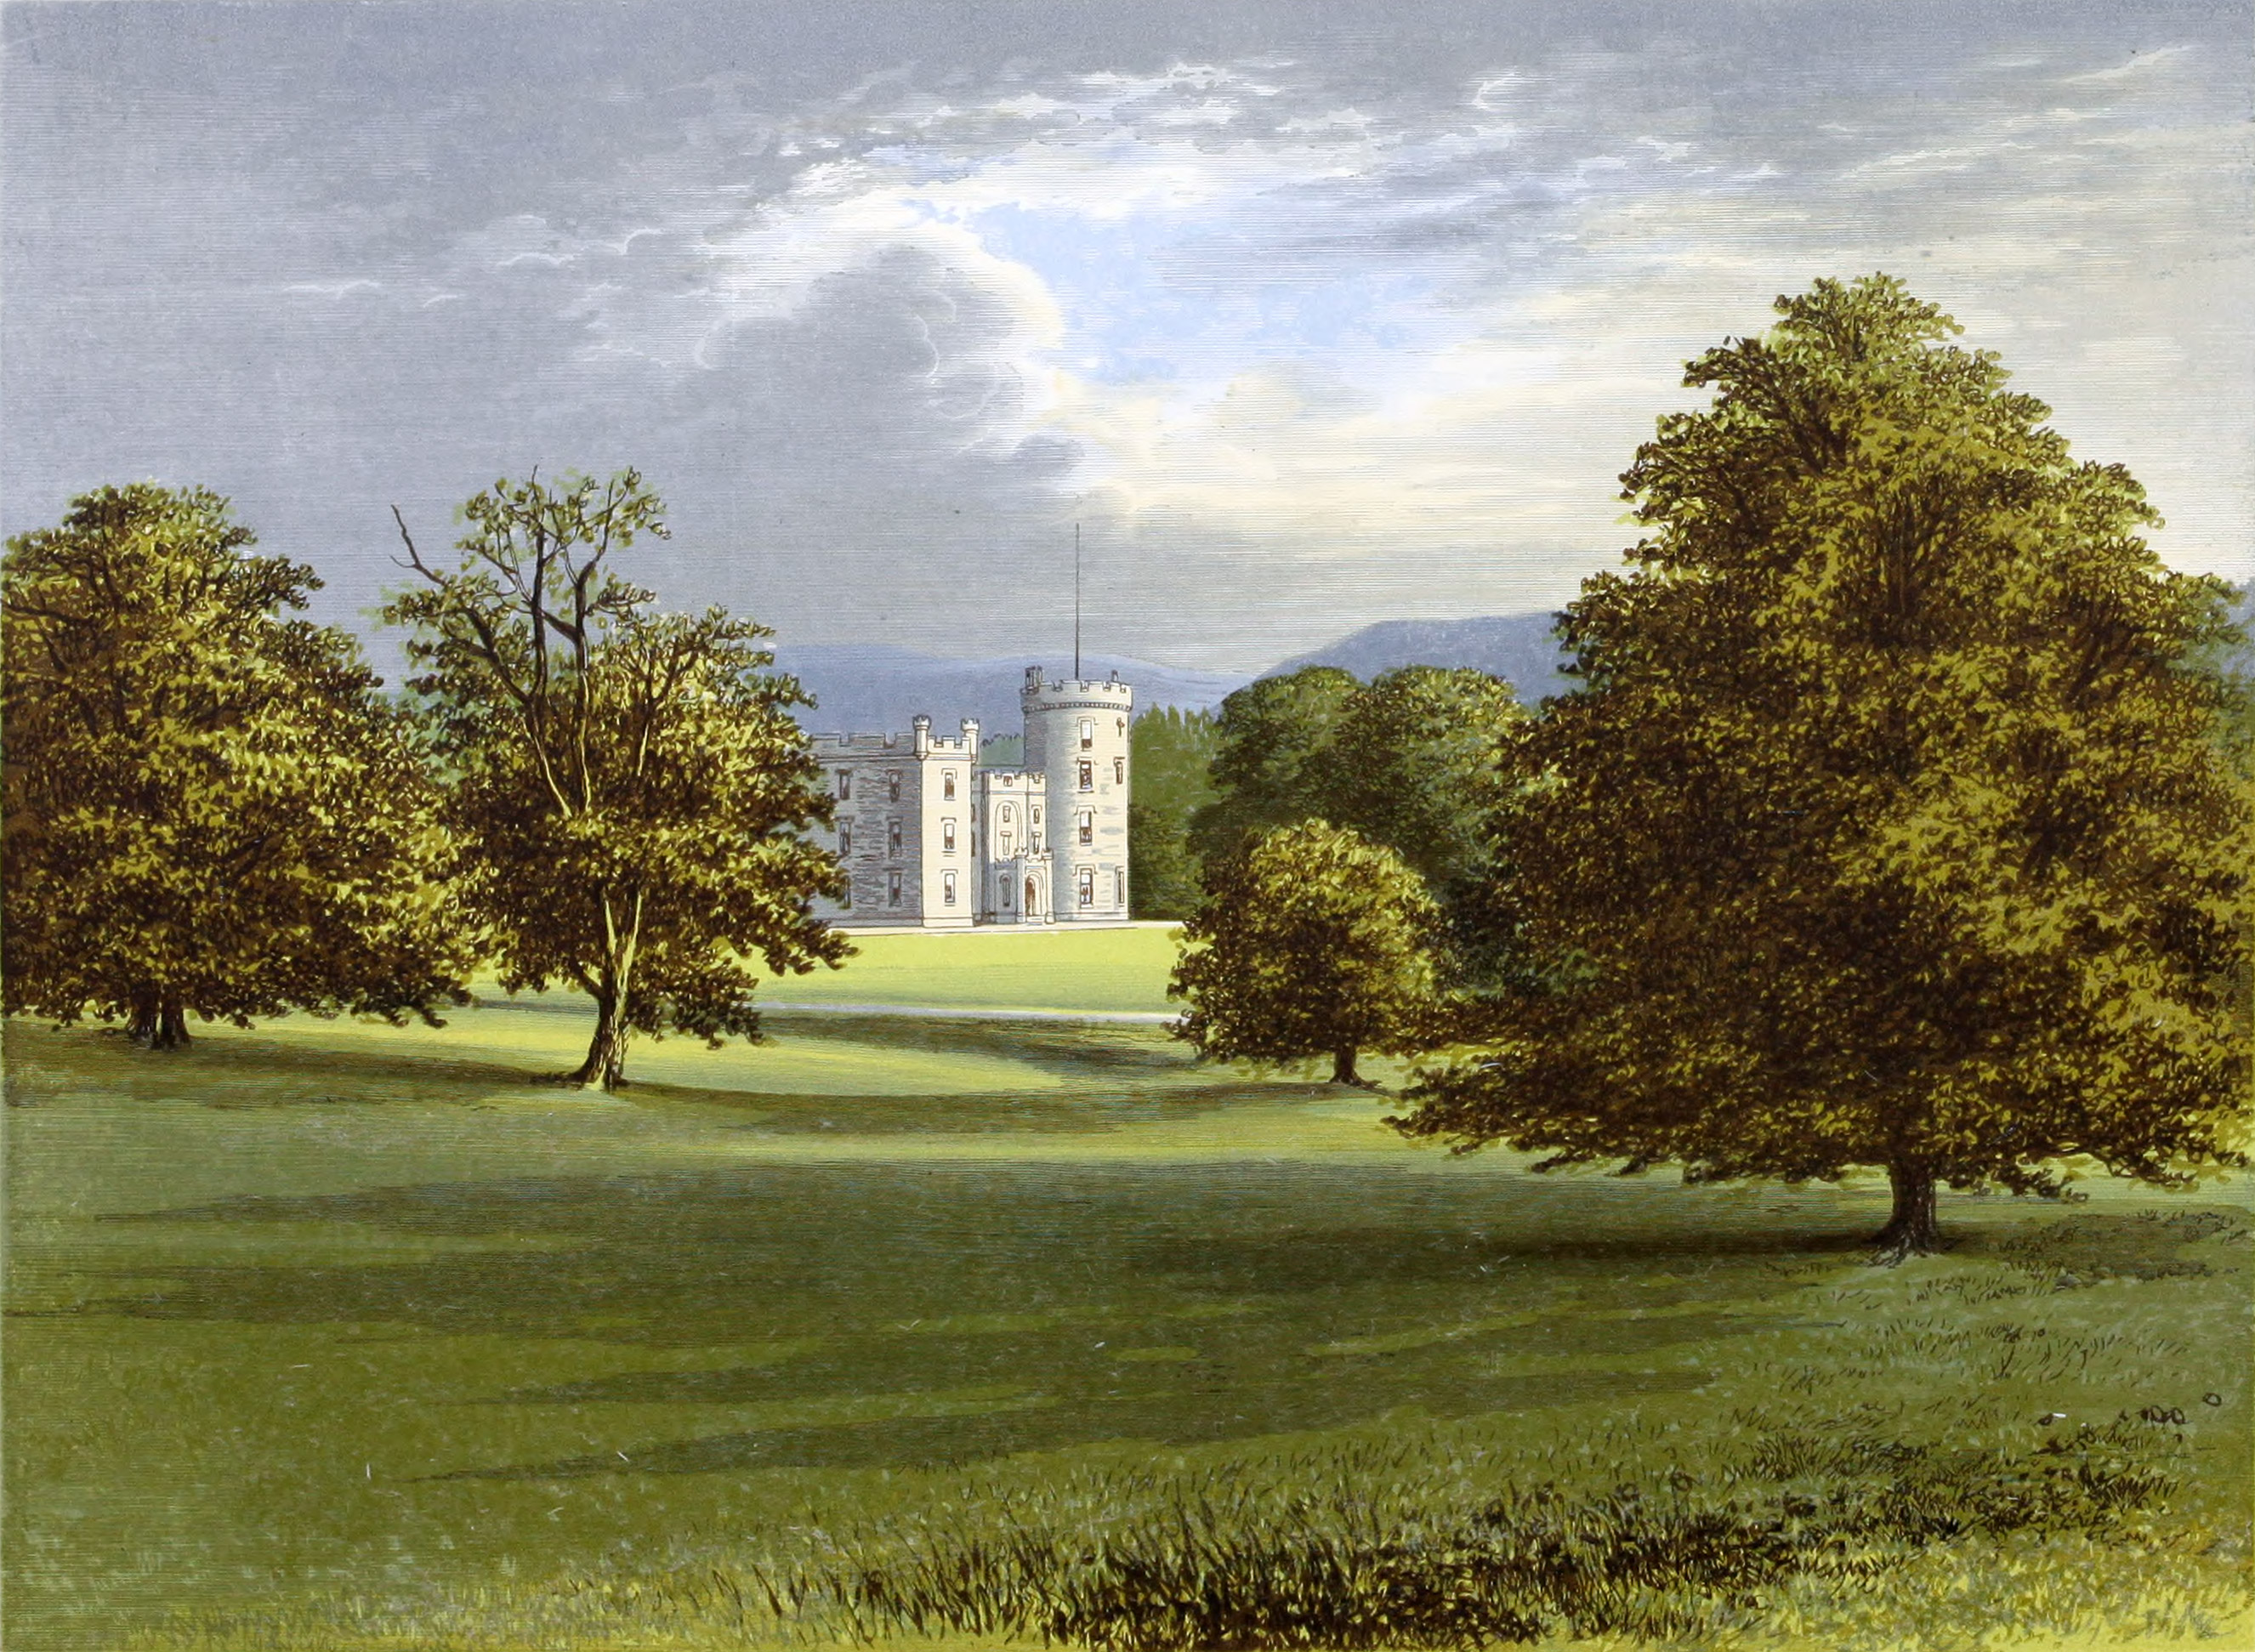 Aberdeenshire Ant near Whitehouse The House of the Lord Forbes Castle Forbes